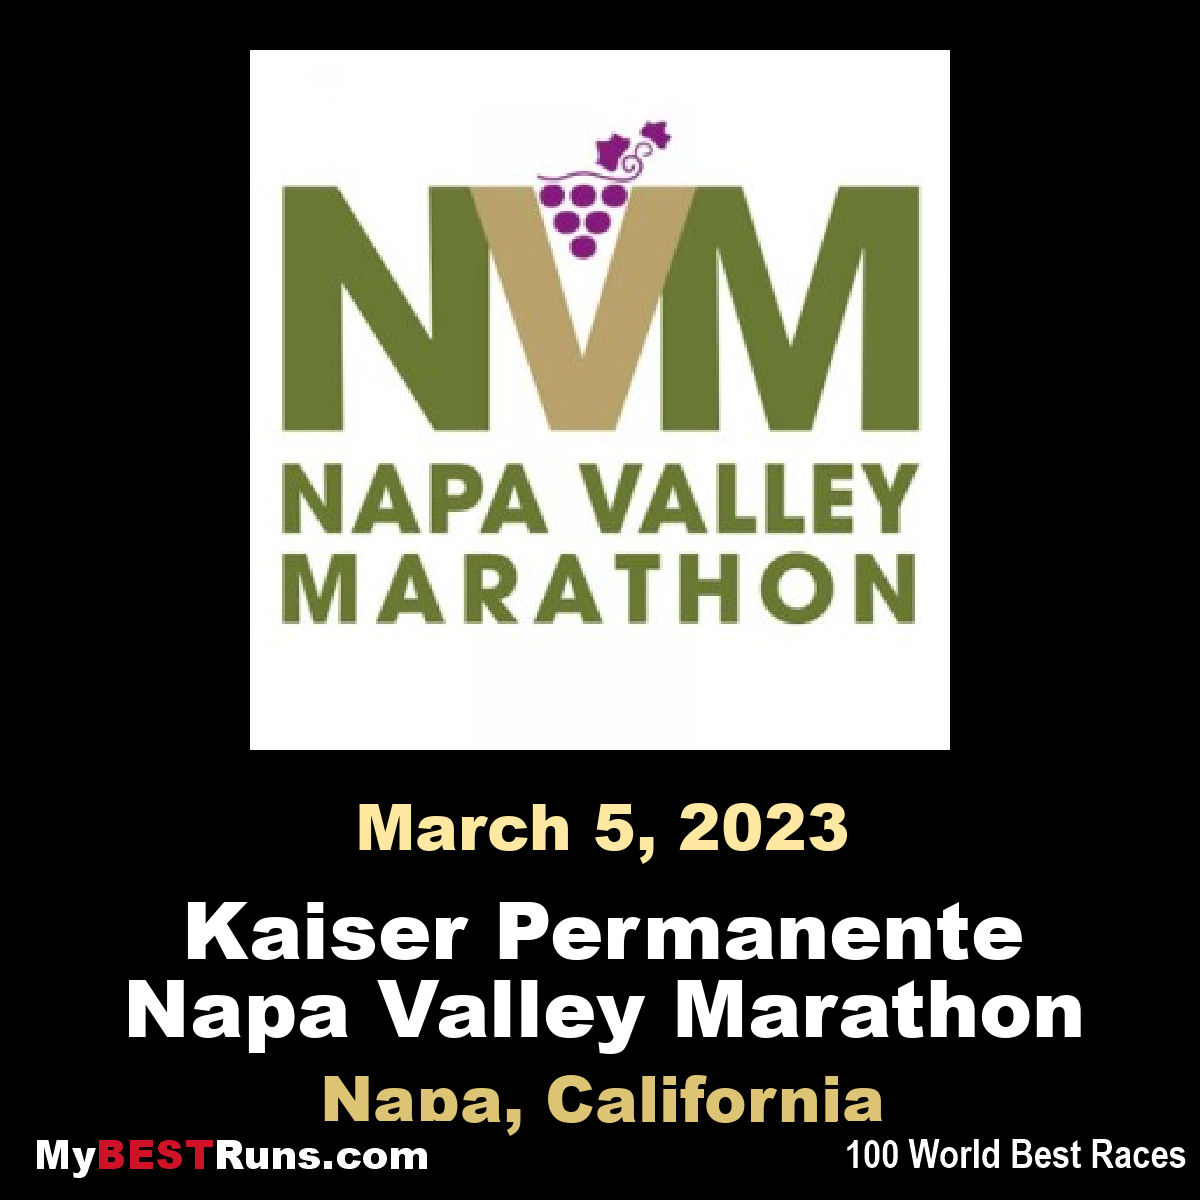 Kaiser Permanente Napa Valley Marathon